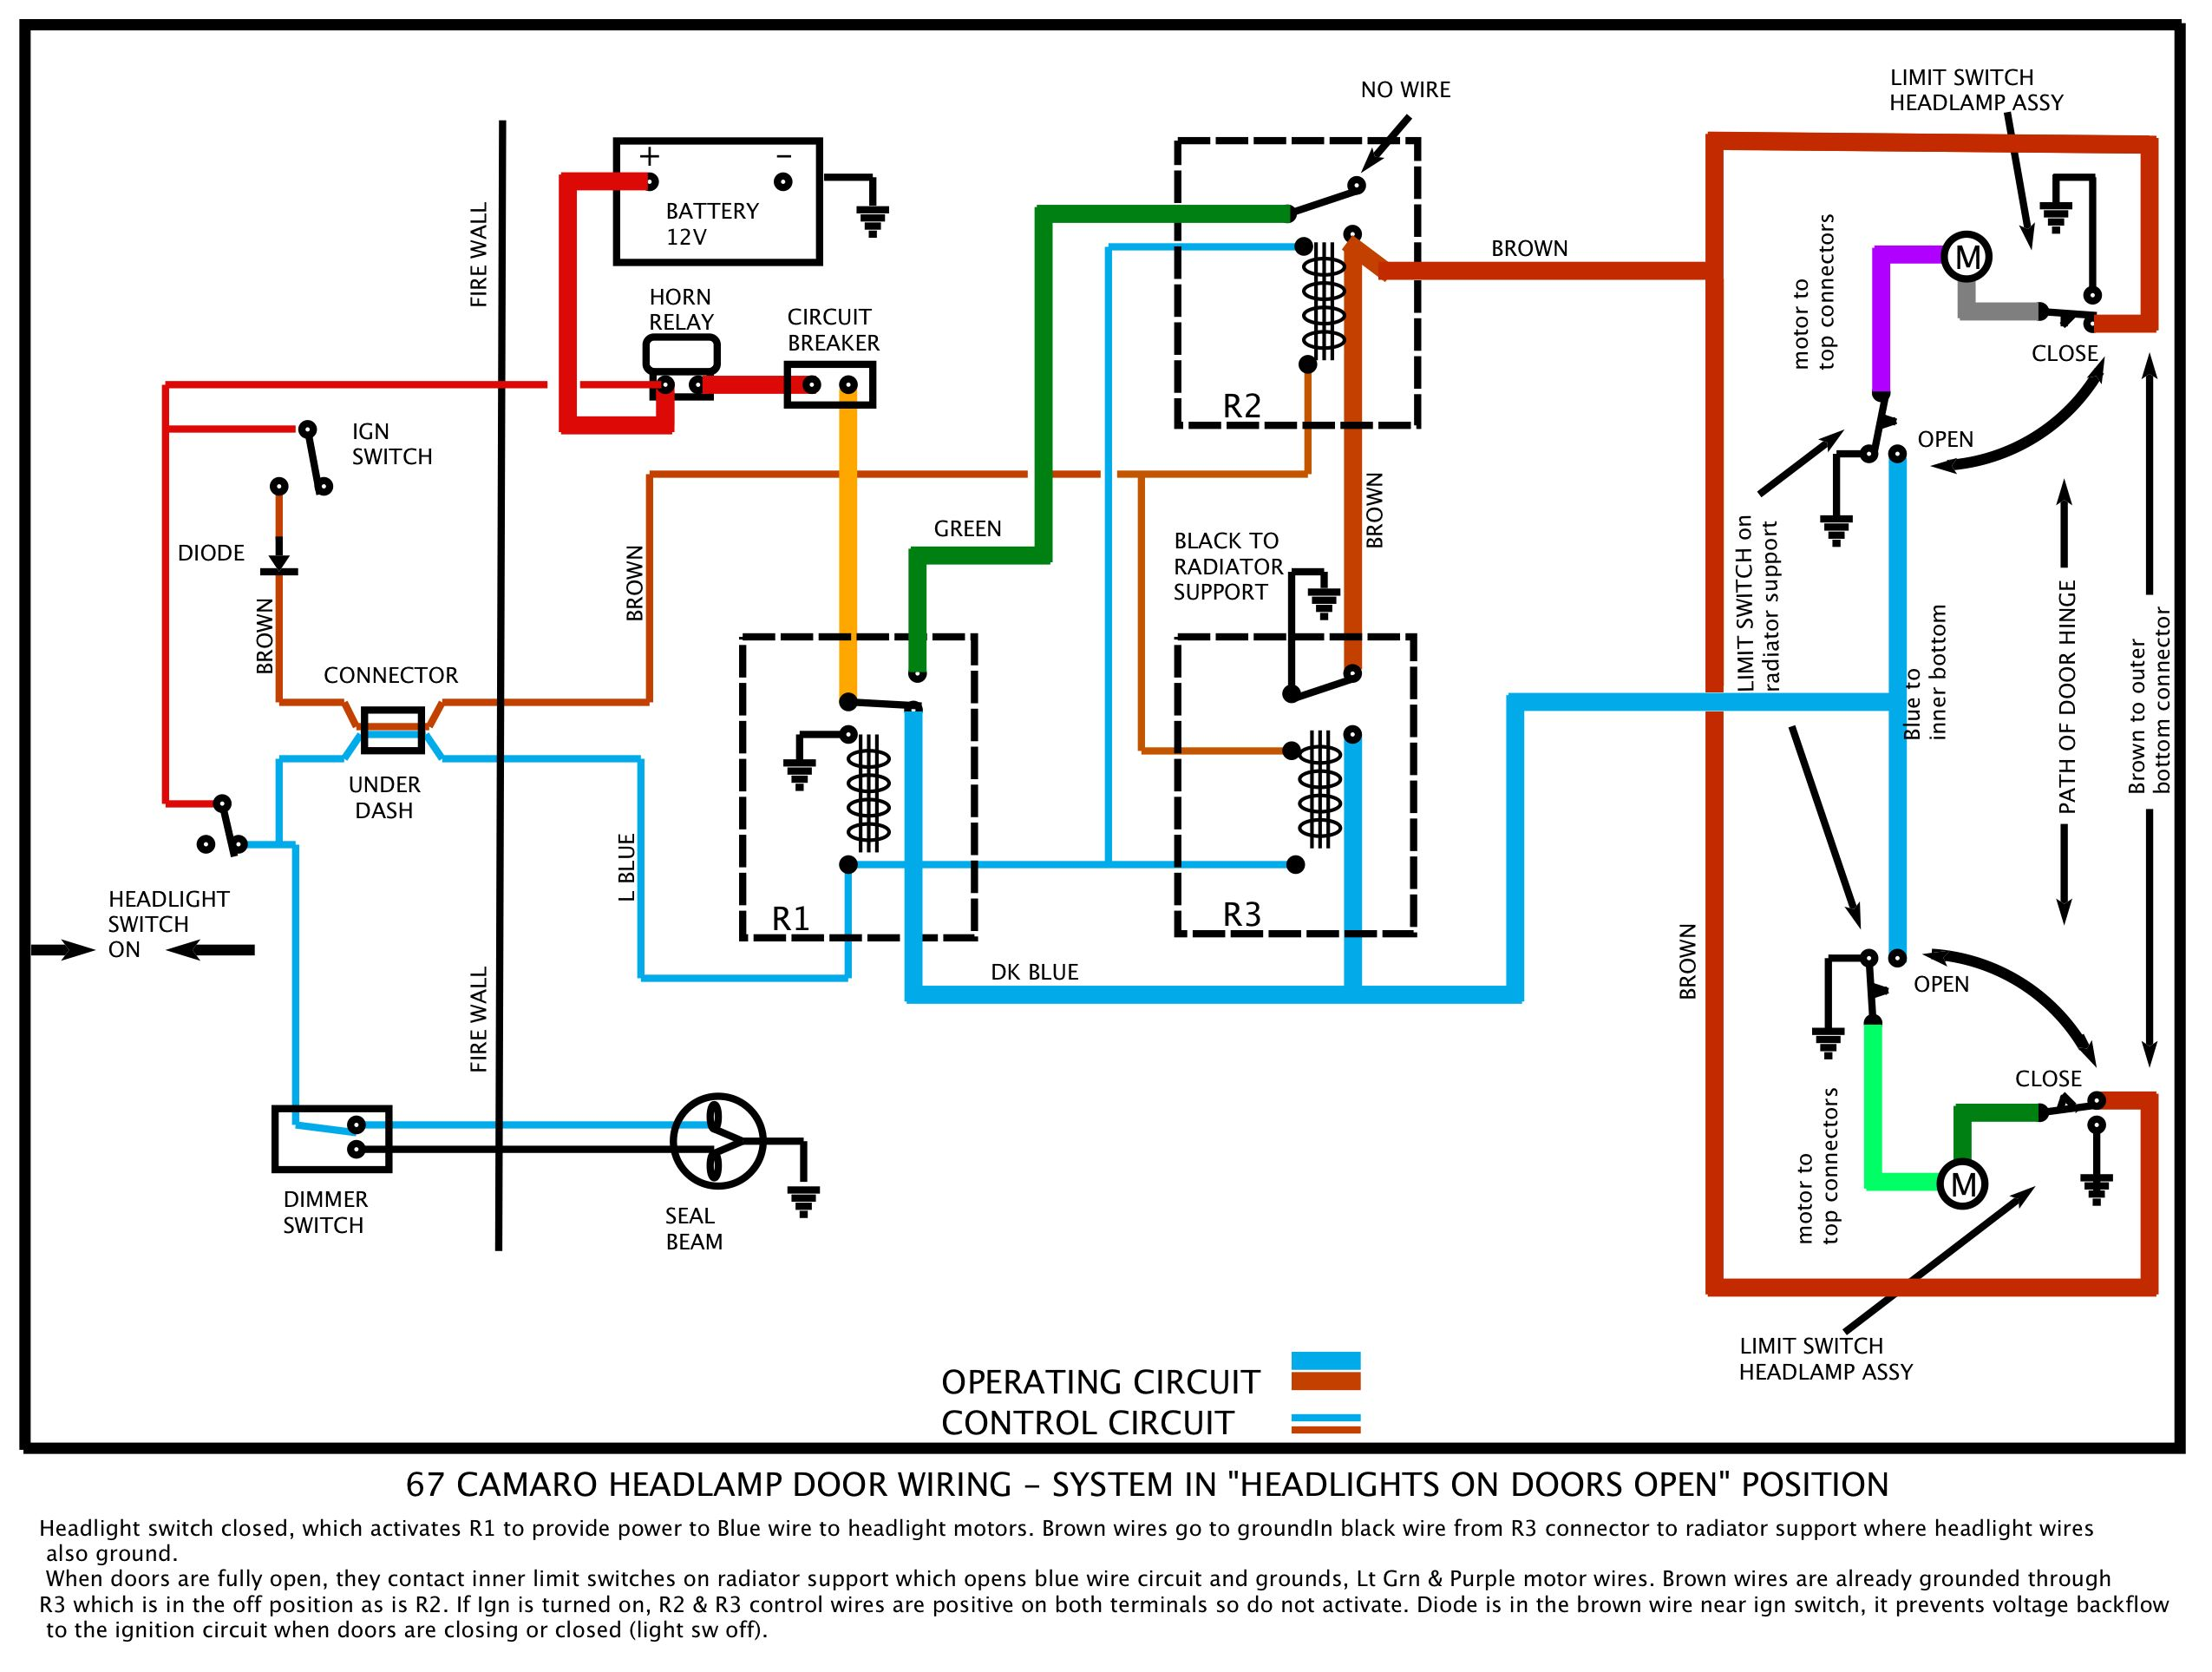 Rally Wiring Harness Diy Diagram Will Be A Thing Gmc Envoy Headlight 67 Rs Doors House Guide